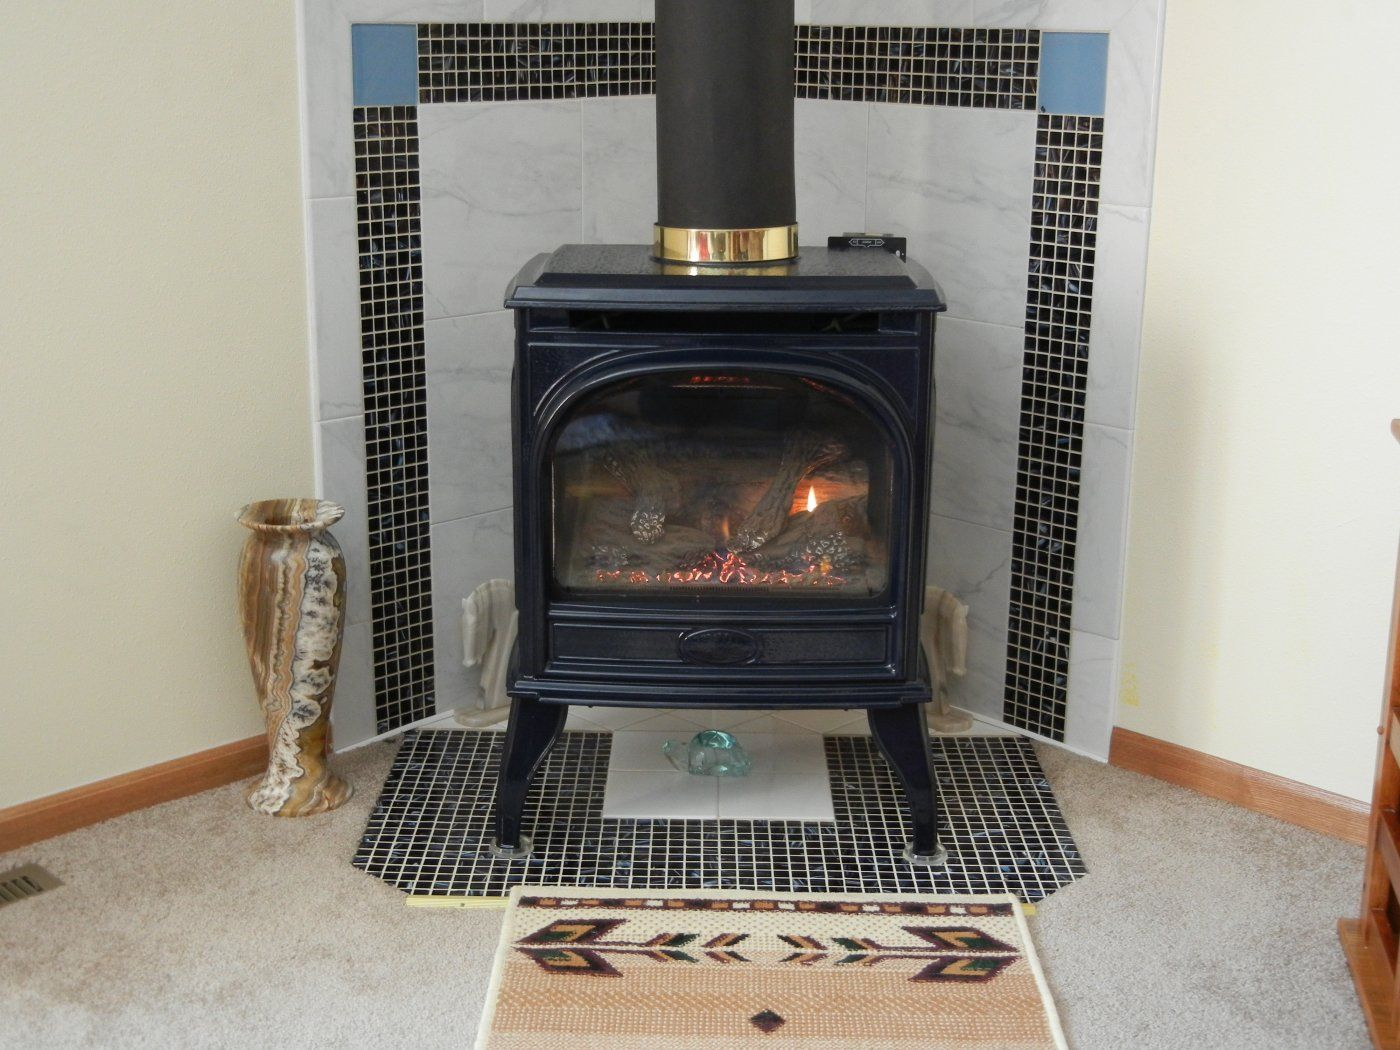 pellet stove versus propane room heater hearth com forums home